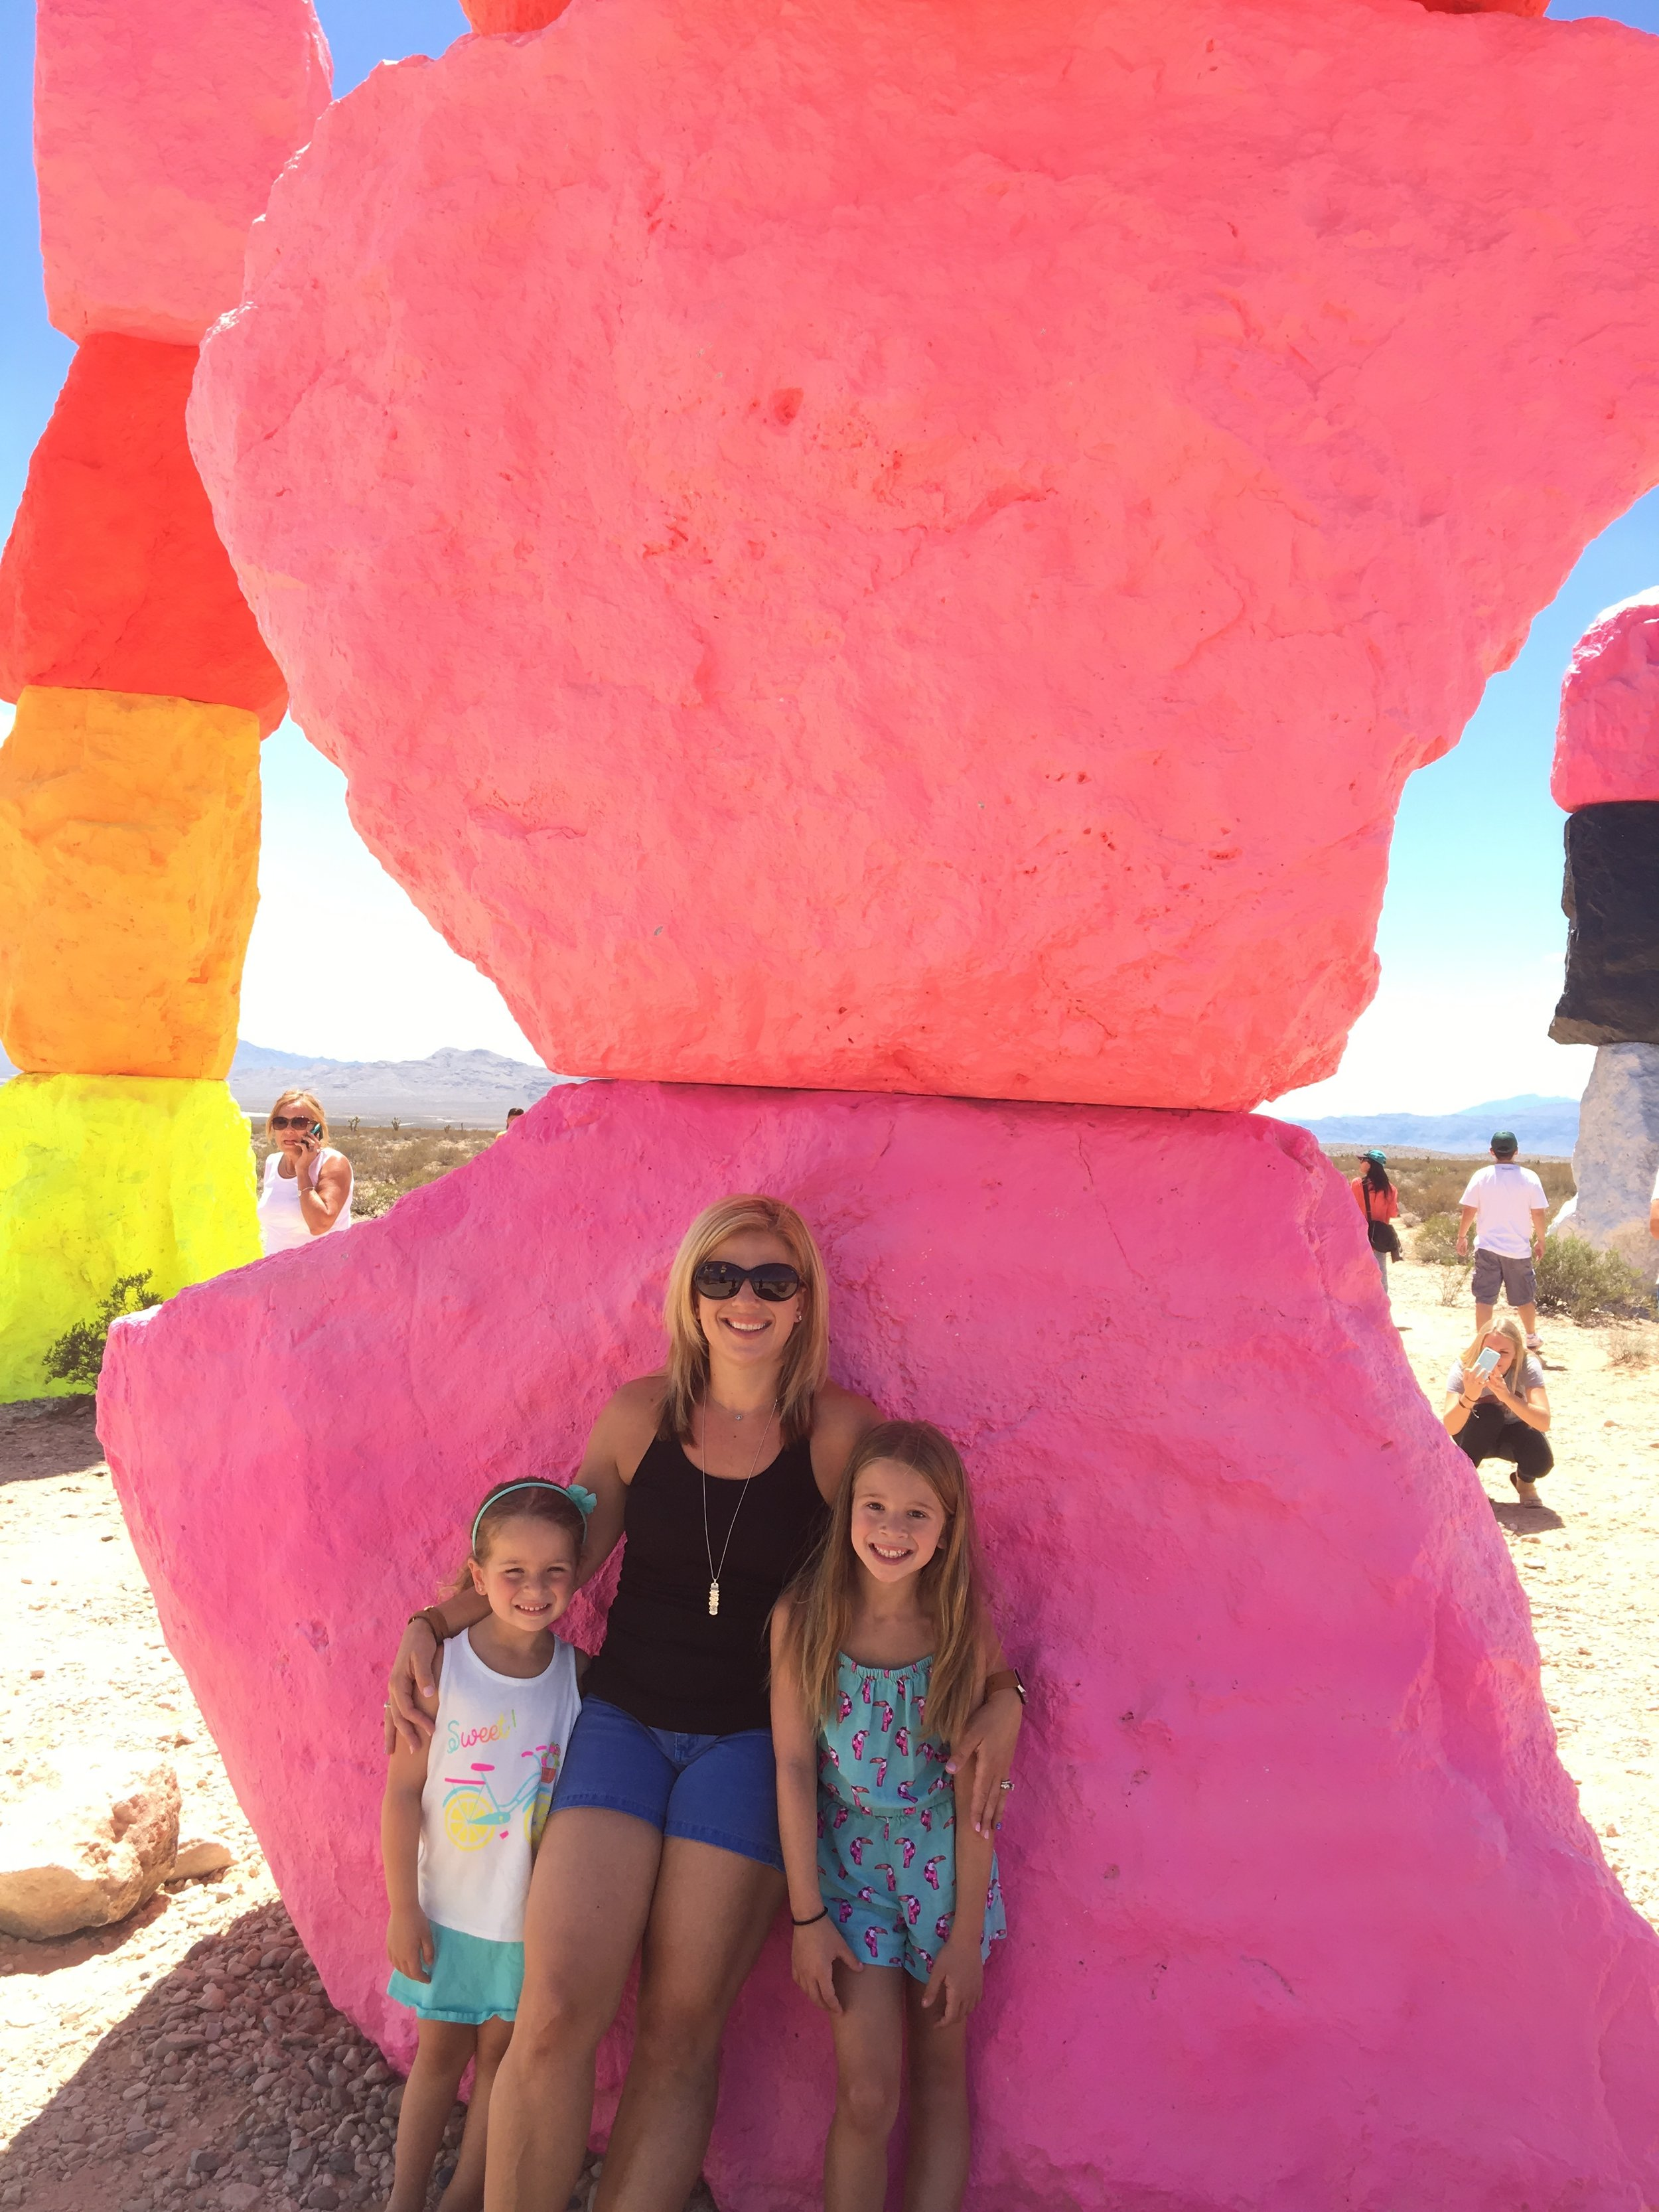 Allowing me to take my kids to Las Vegas to visit our cousins.    -Sabrina L., New Jersey